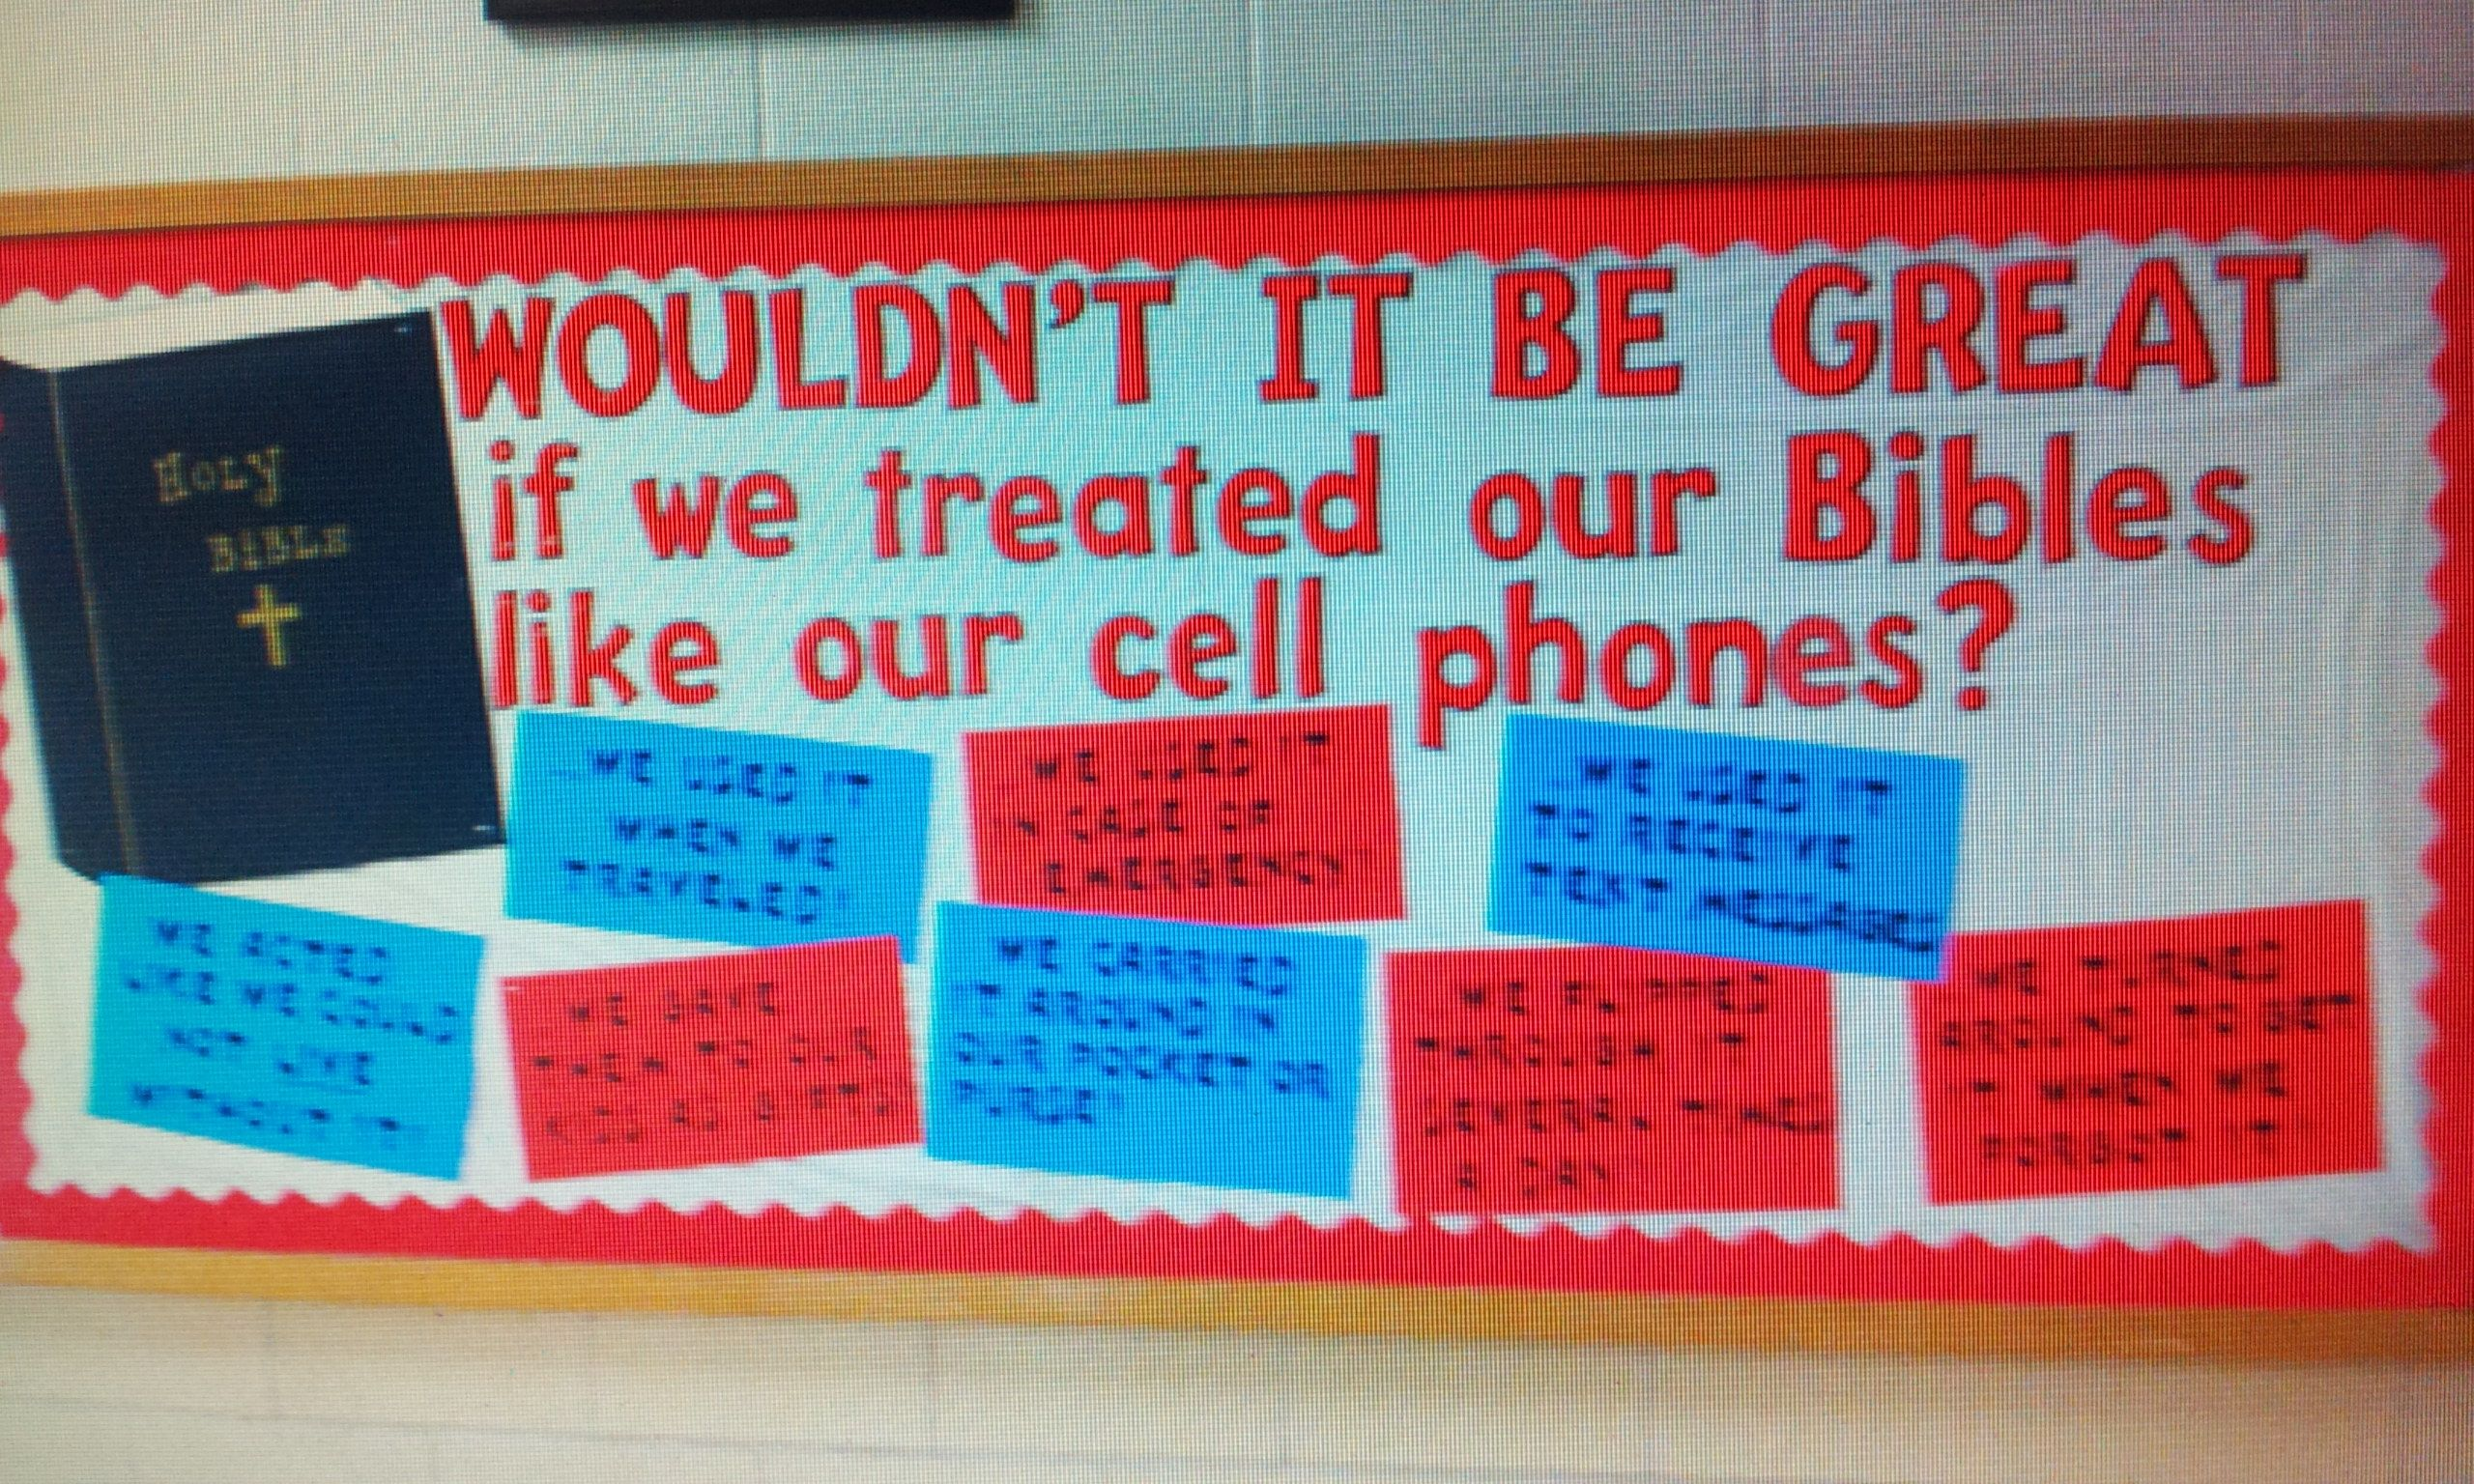 High School Christian Board Cell Phone Vs Bibles Teacher